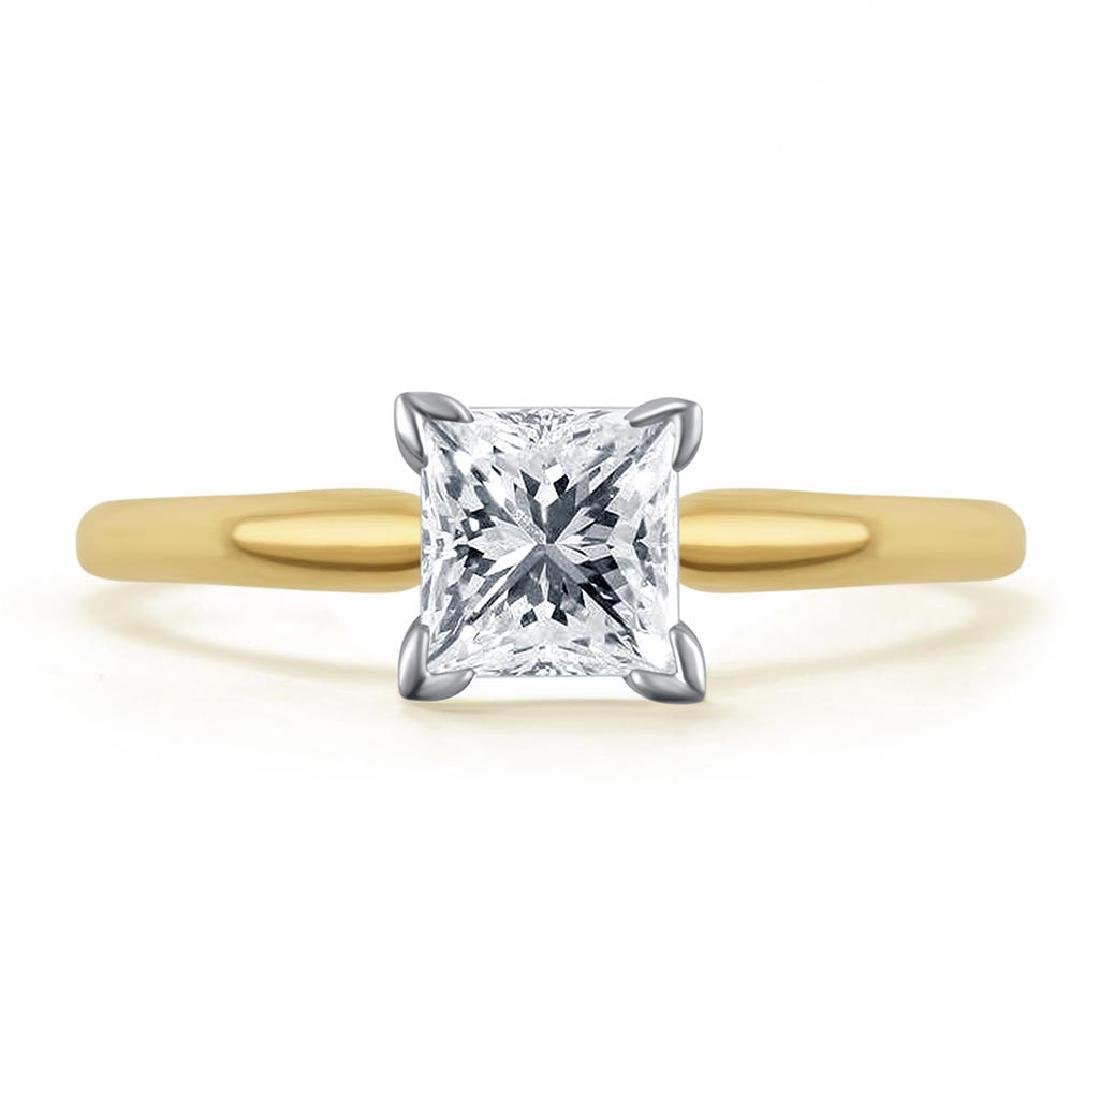 CERTIFIED 0.71 CTW PRINCESS F/SI1 SOLITAIRE RING IN 14K